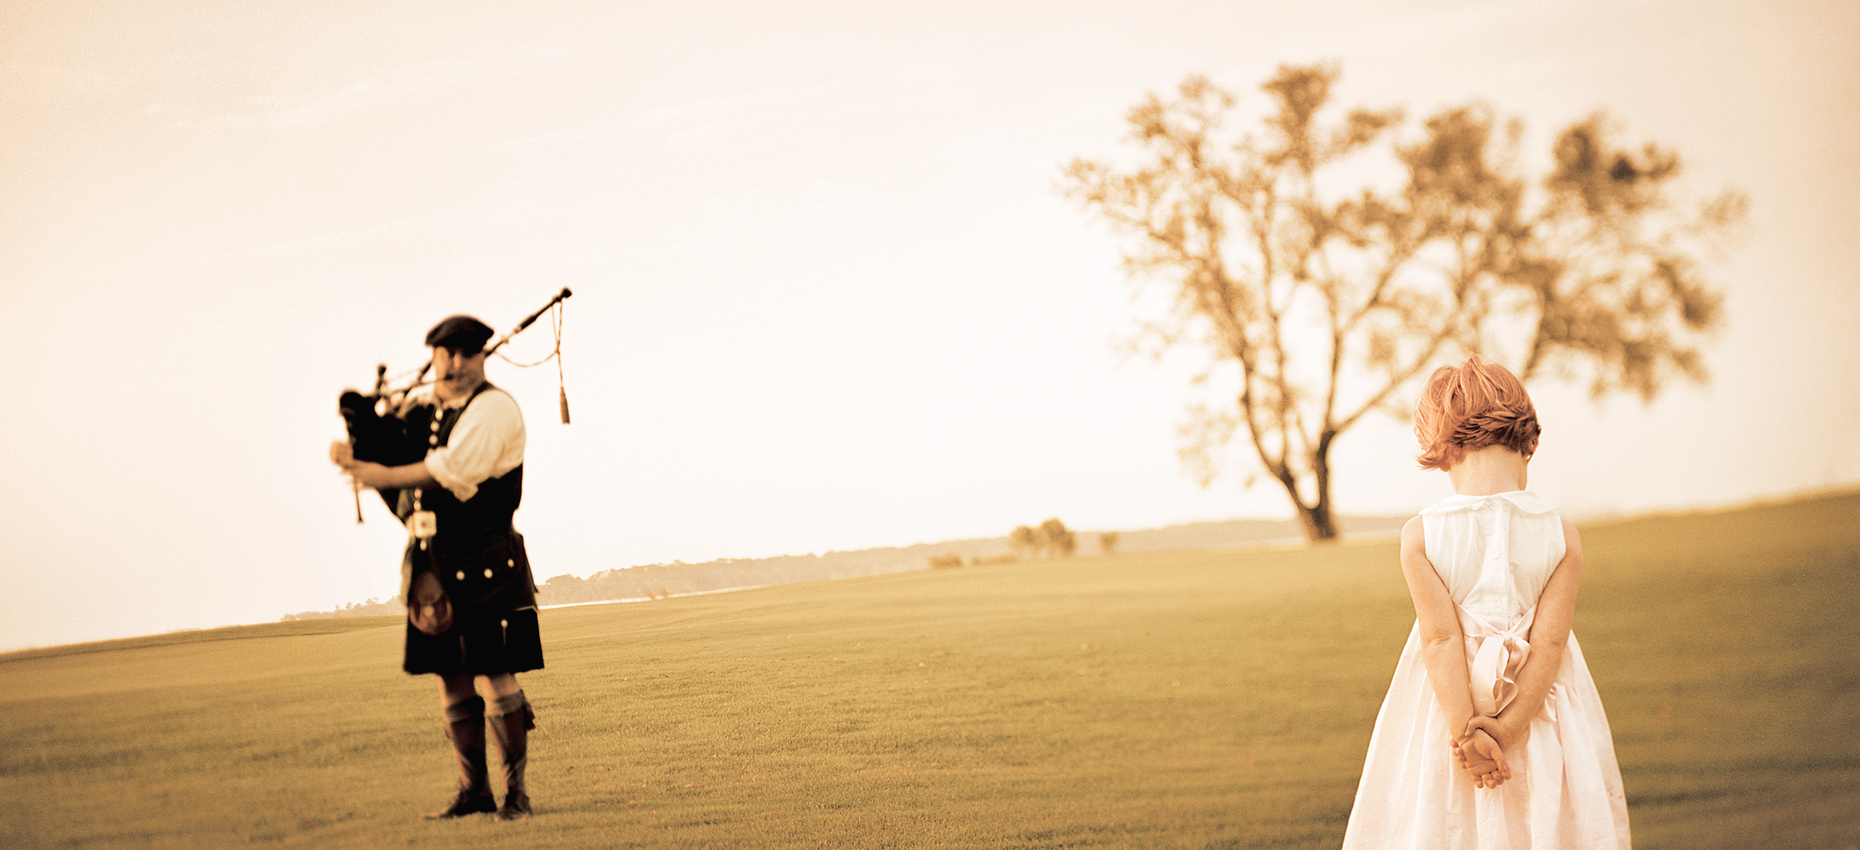 Bagpiper and a little girl - Sea Island Resort